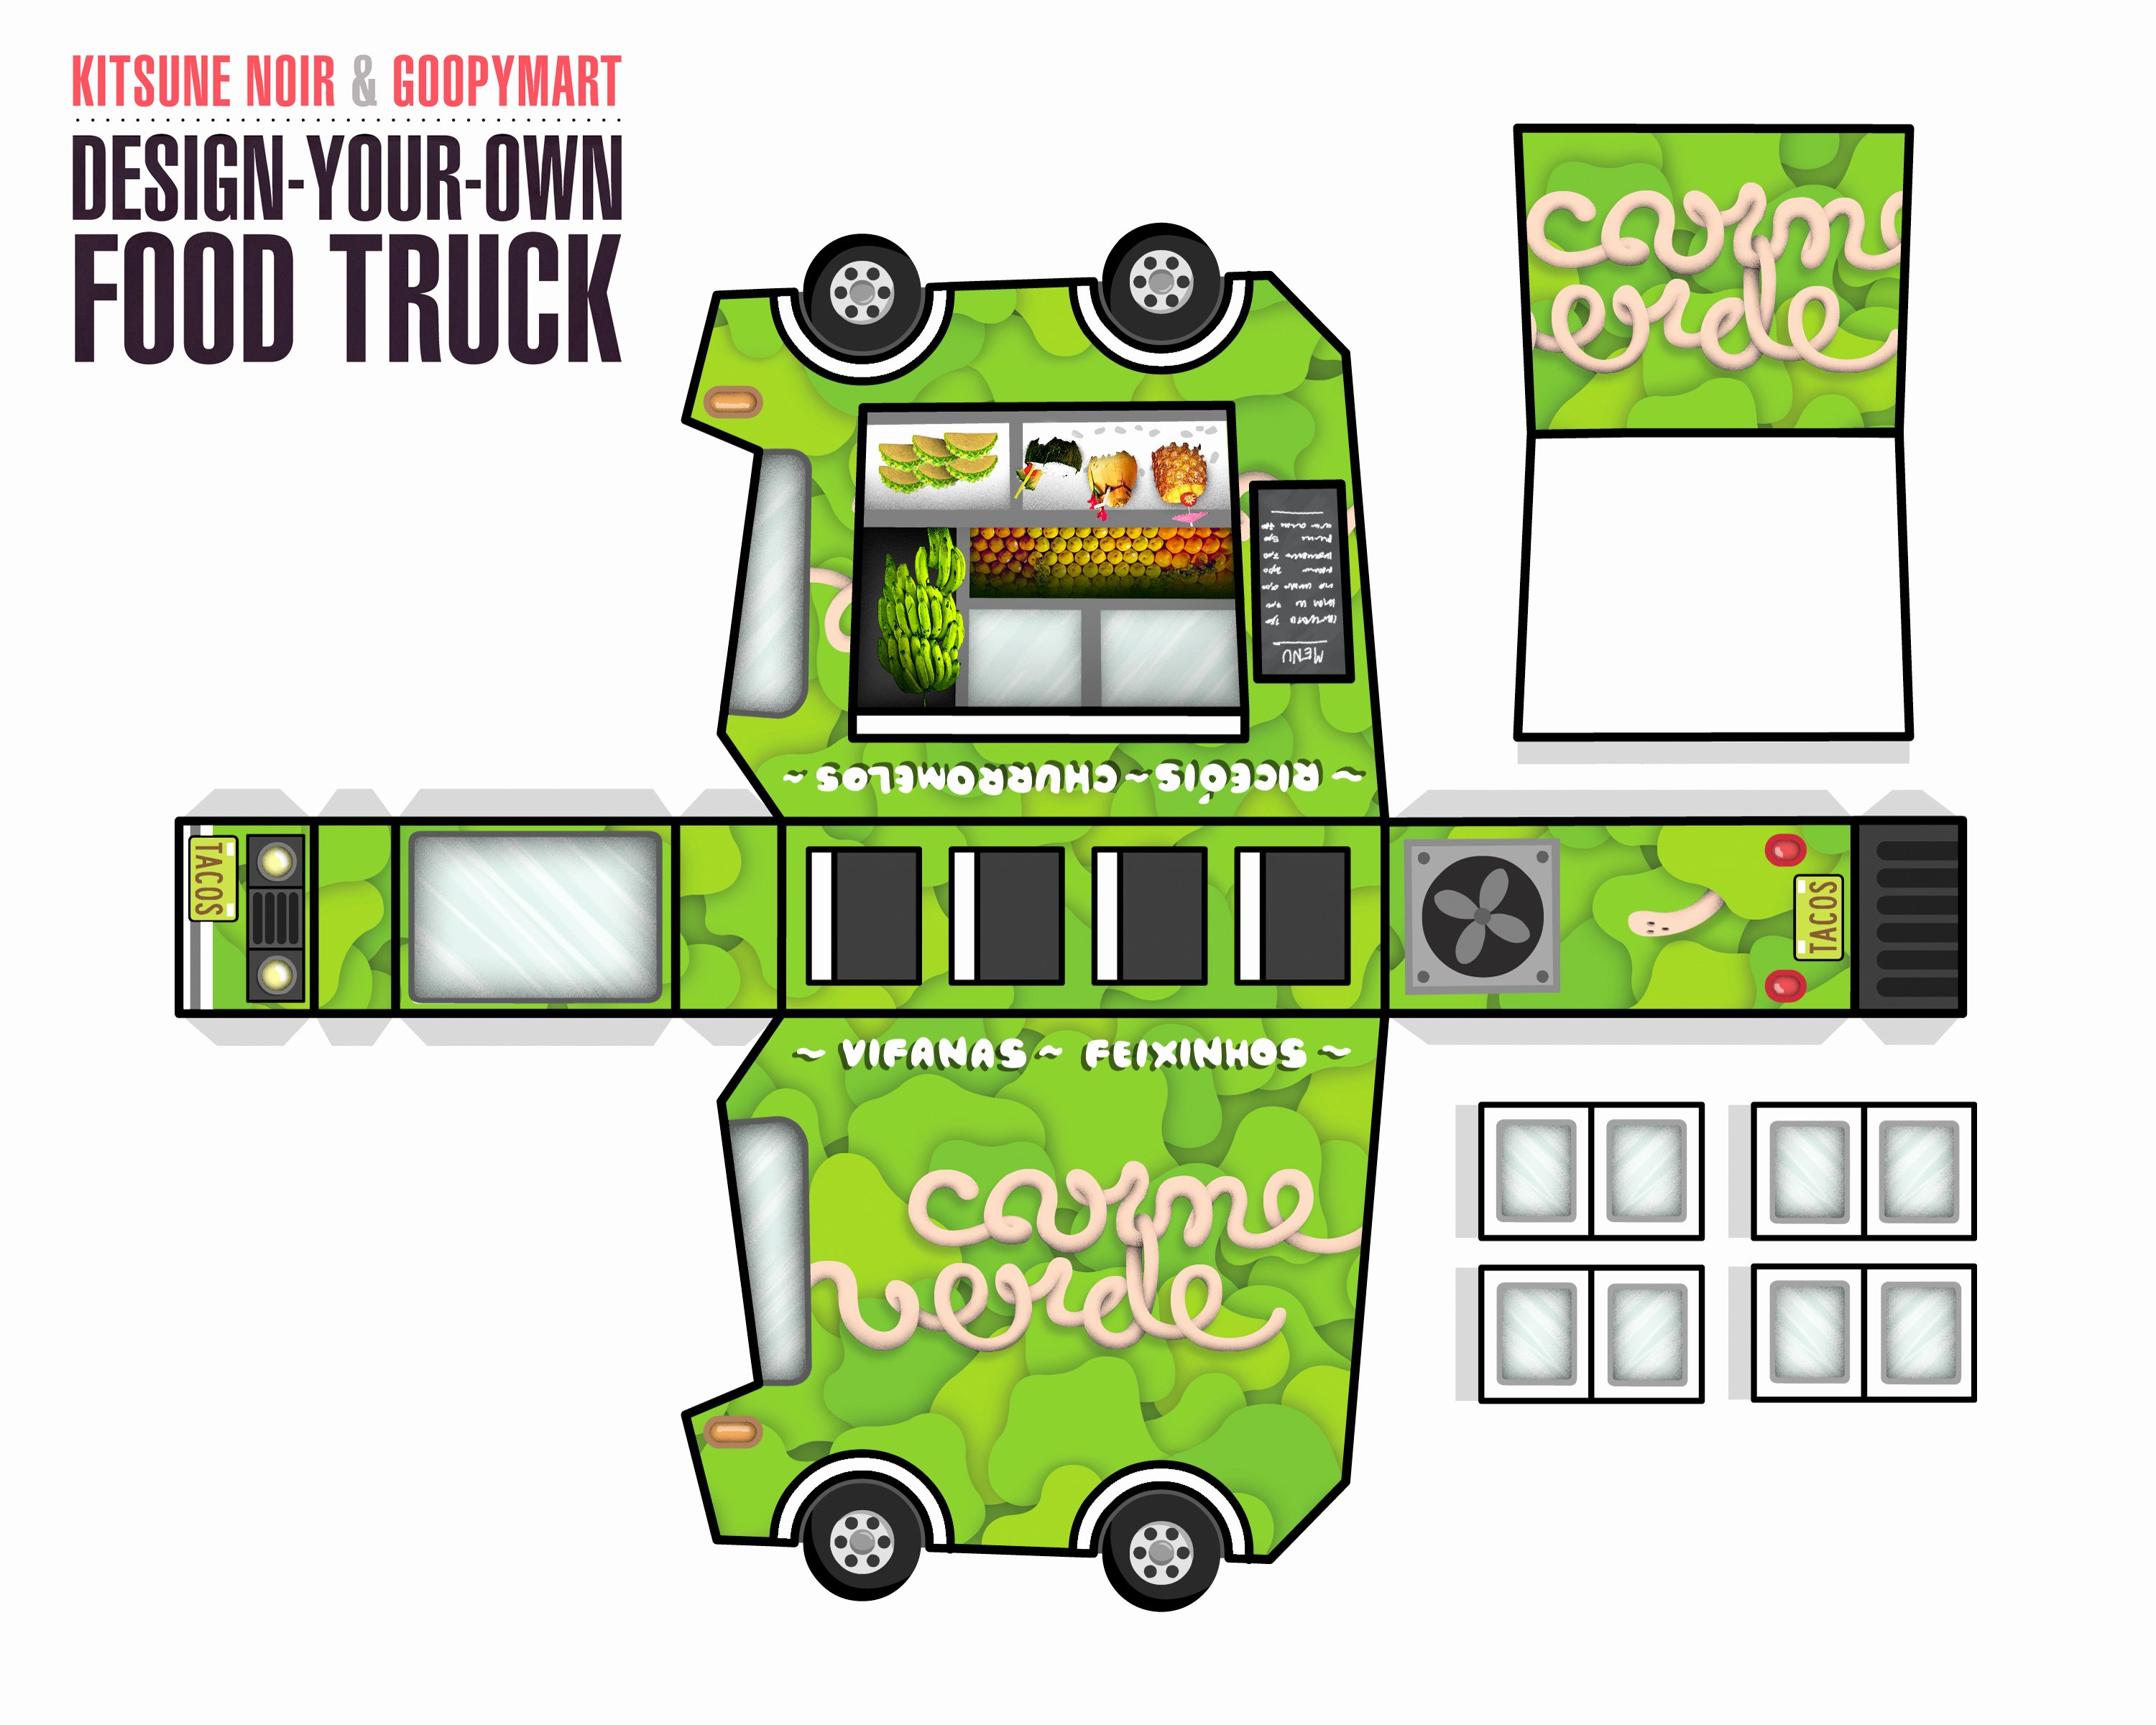 Food Truck Design Template New Kitsune Noir & Goopymart Food Truck Winners the Fox is Black